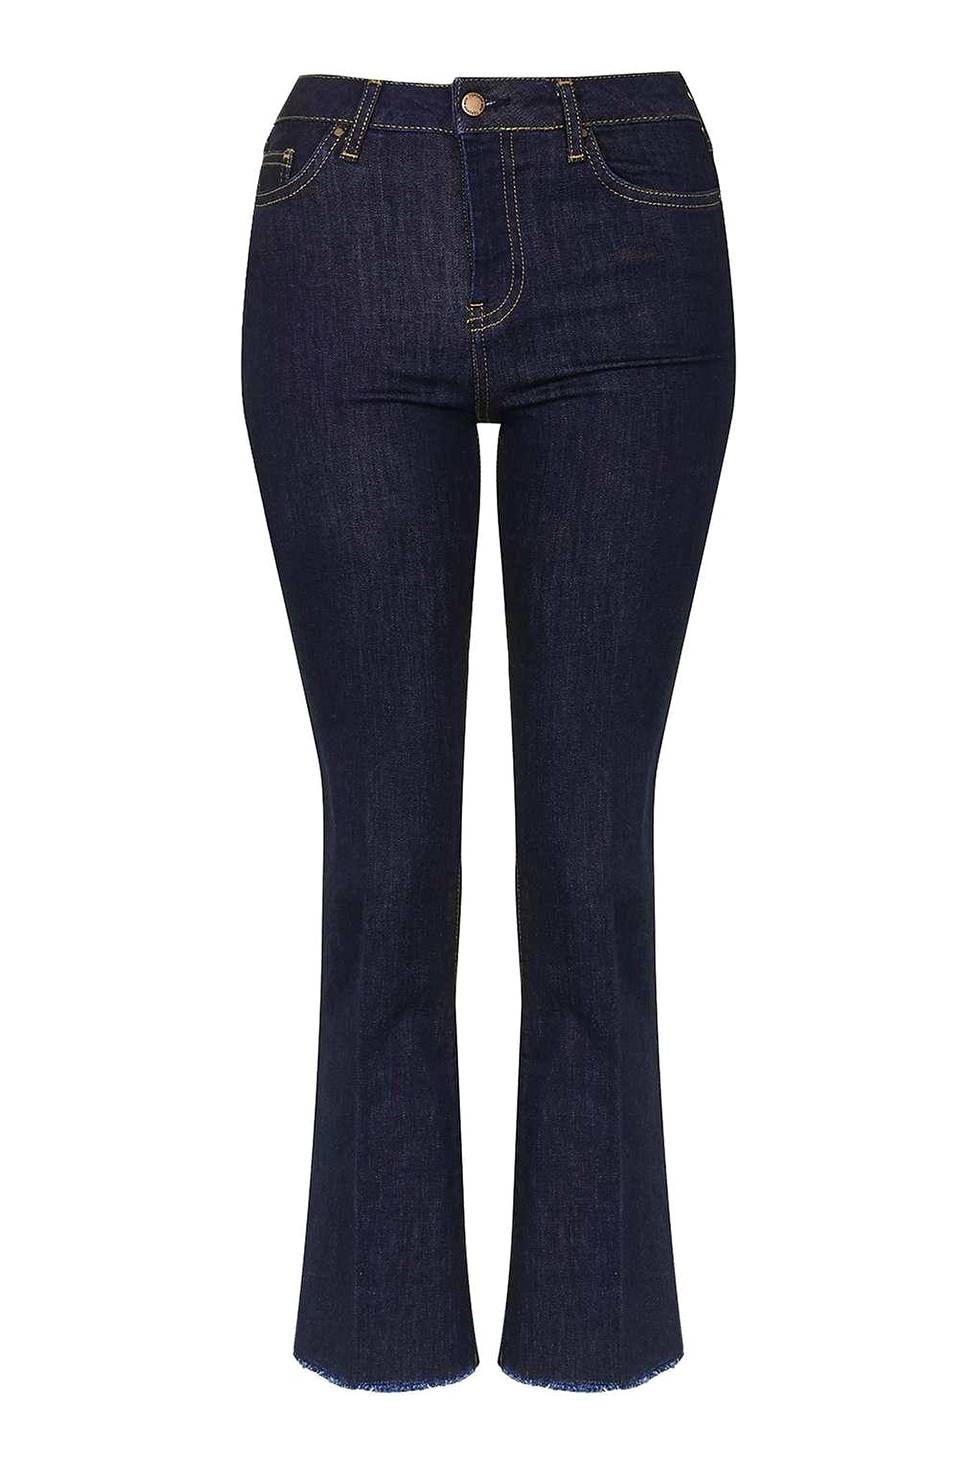 MOTO Raw Hem Crop Kick Flared Jeans 20 €, Topshop.